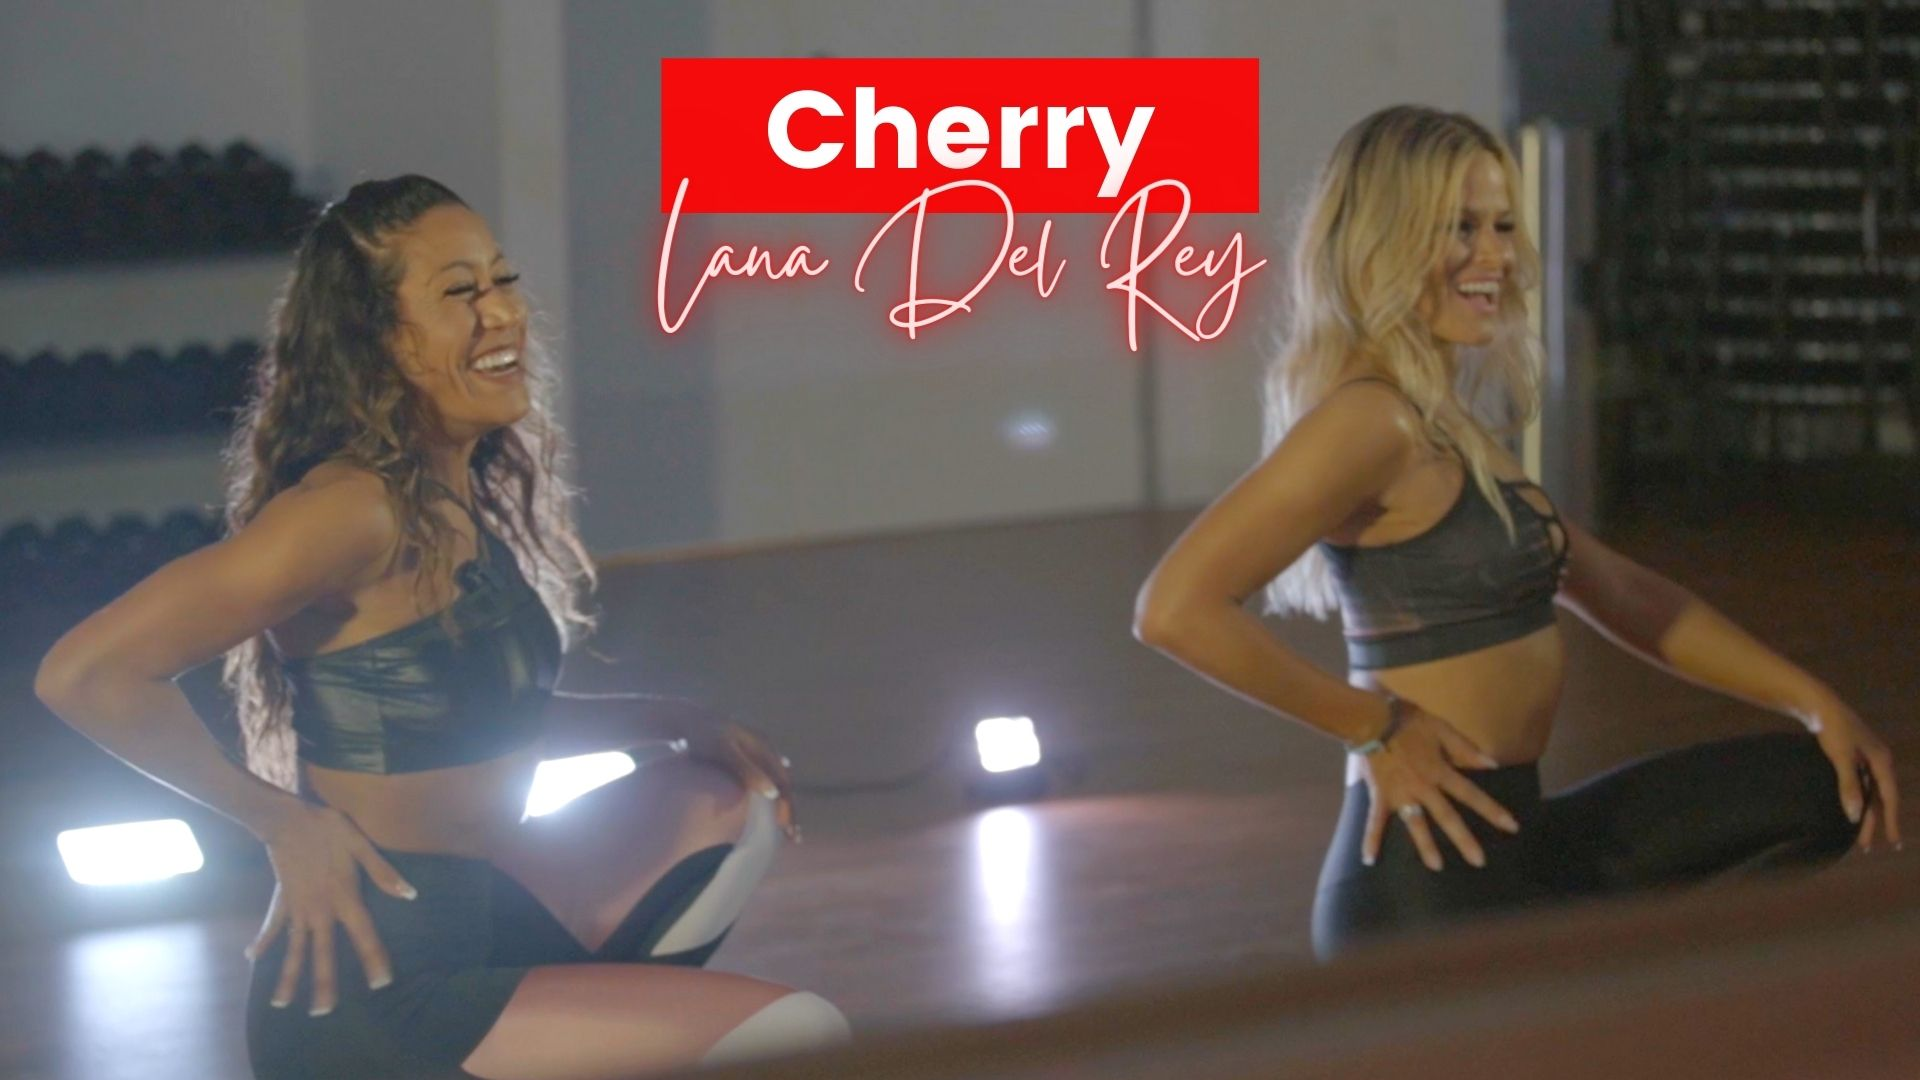 learn the cherry routine by lana del rey